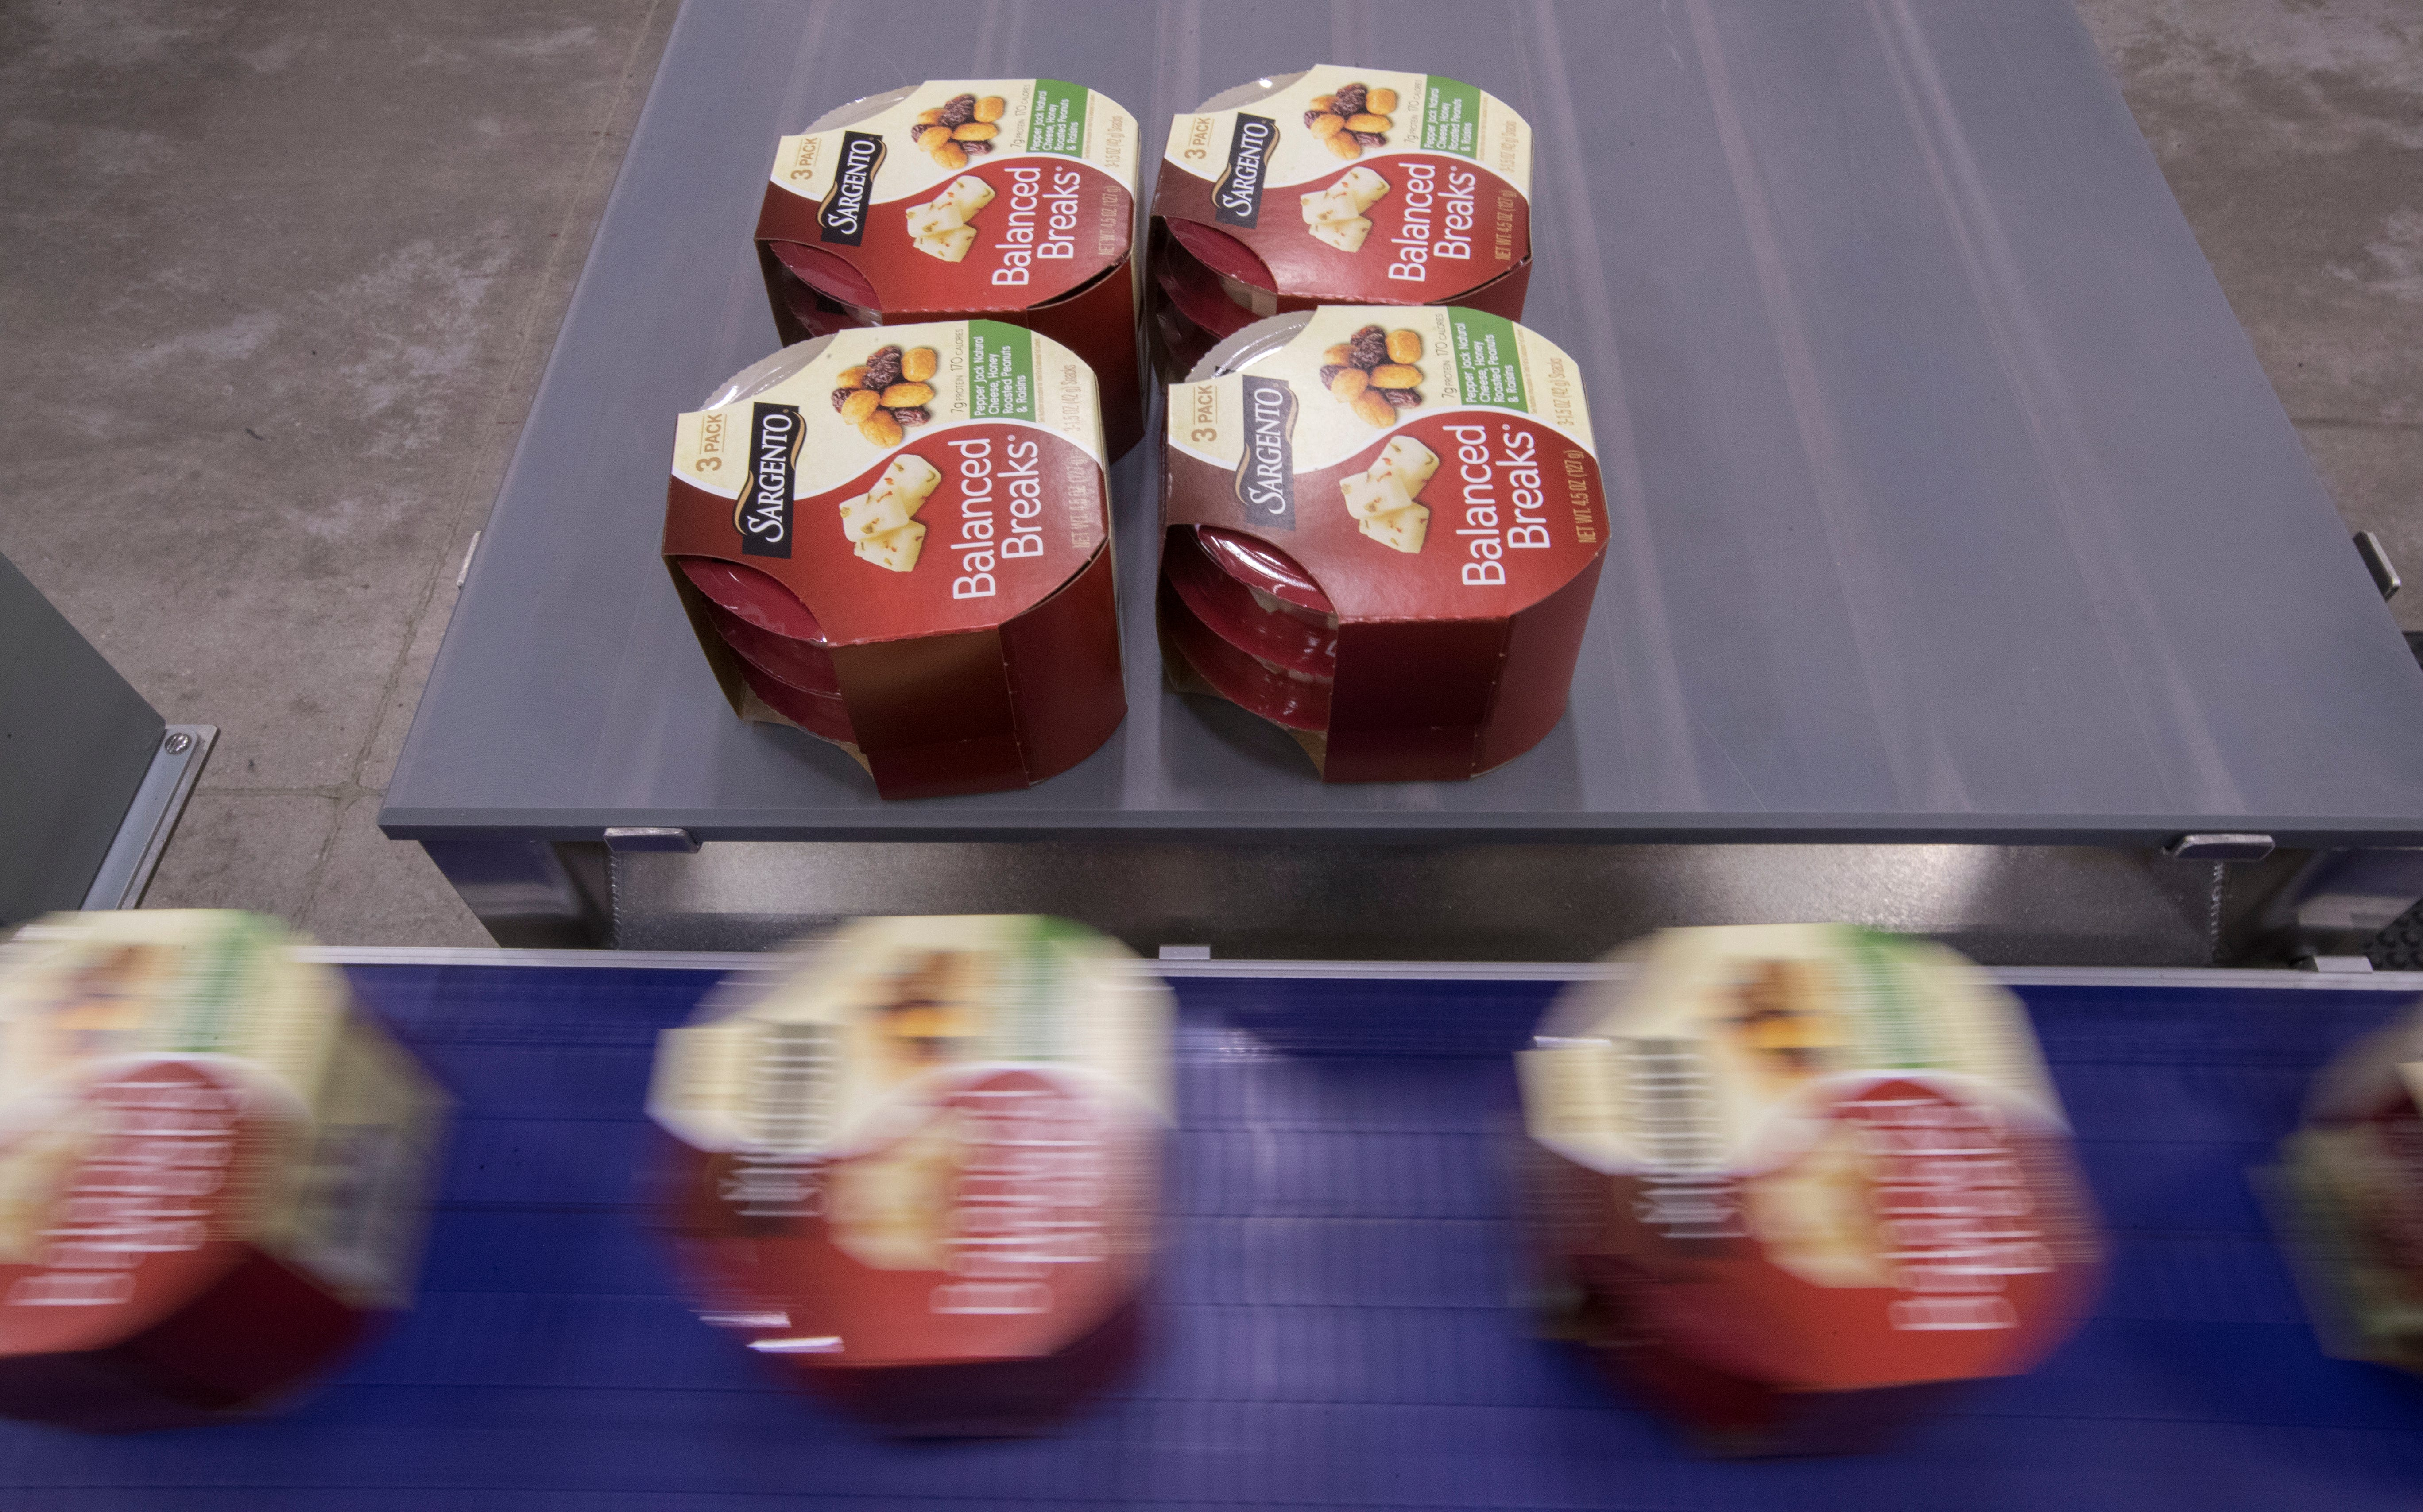 Packages of Balanced Breaks snacks move through for packaging at Sargento Foods Inc.